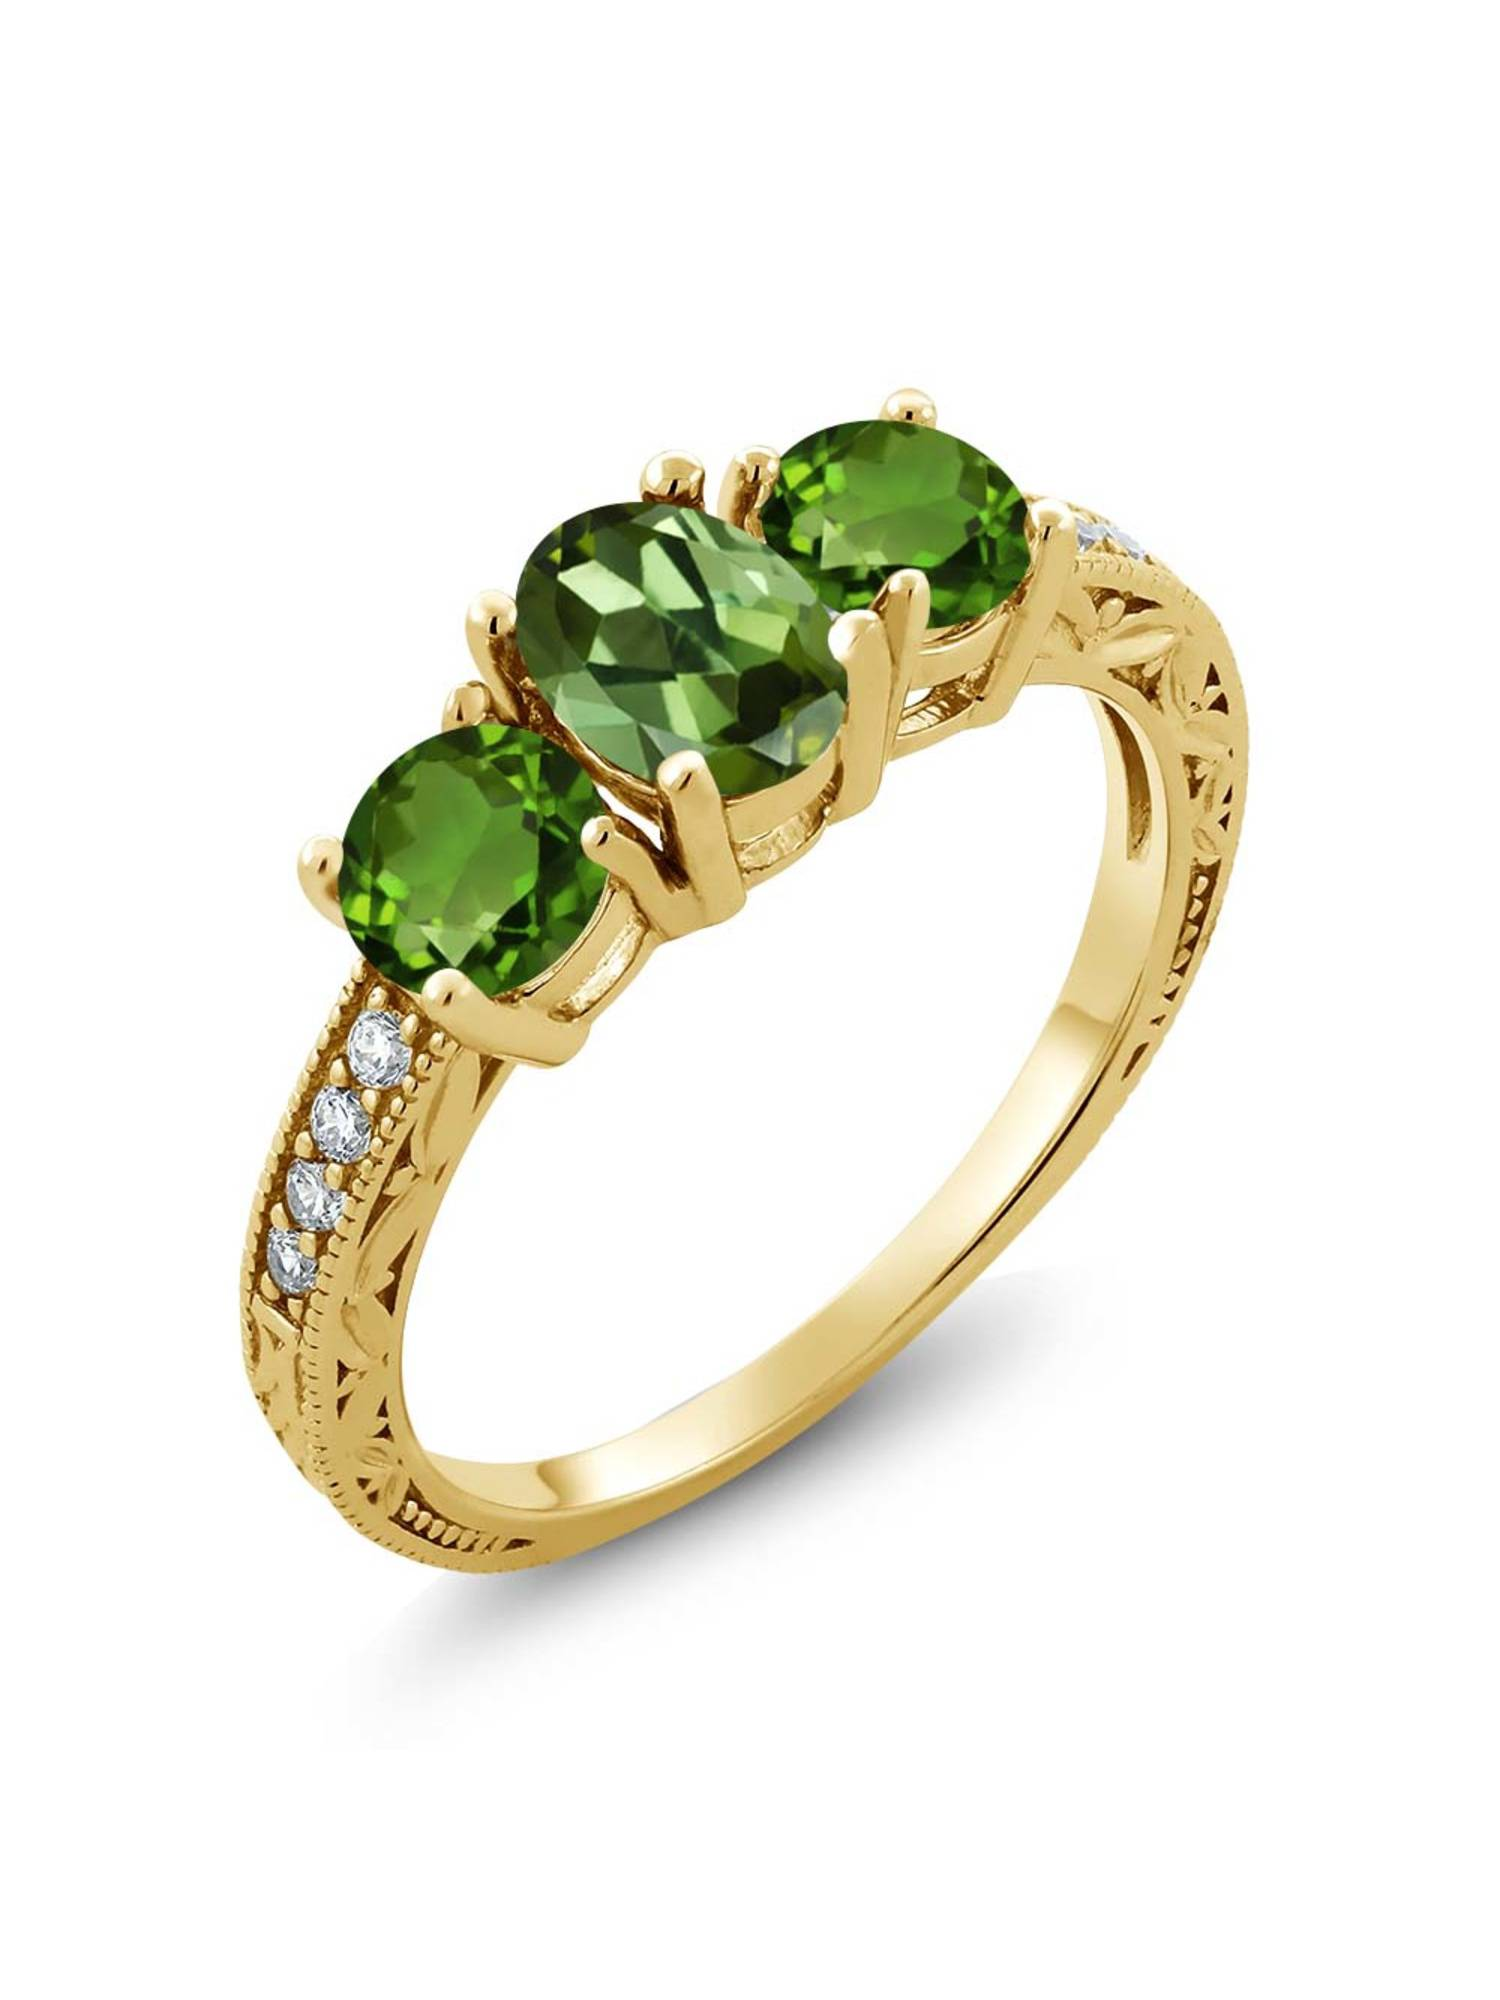 Gem Stone King 1.82 Ct Green Tourmaline Green Chrome Diopside 18K Yellow Gold Plated Silver Ring by